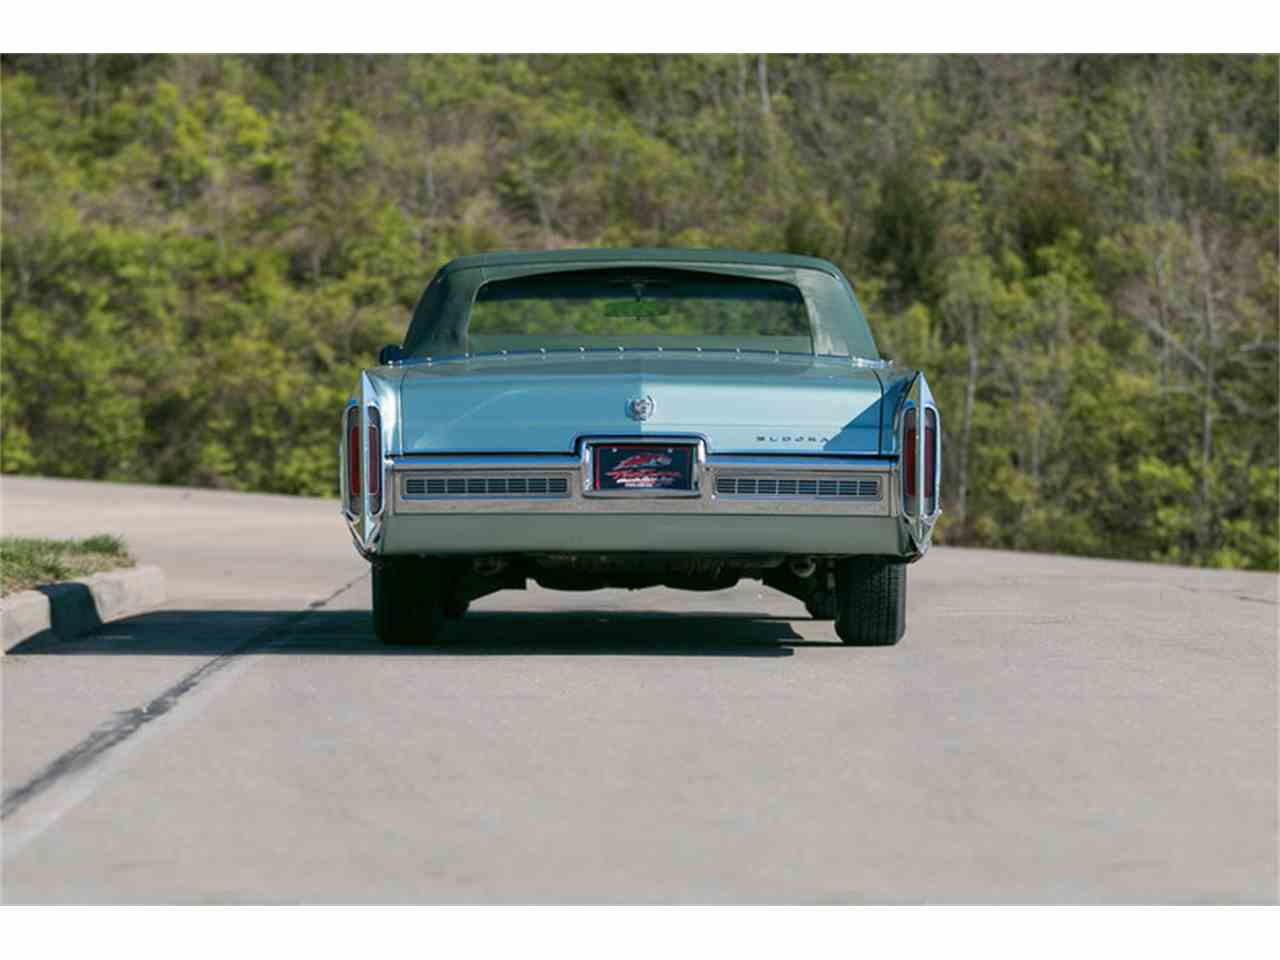 Large Picture of Classic '66 Eldorado located in St. Charles Missouri - $49,995.00 - LSH1